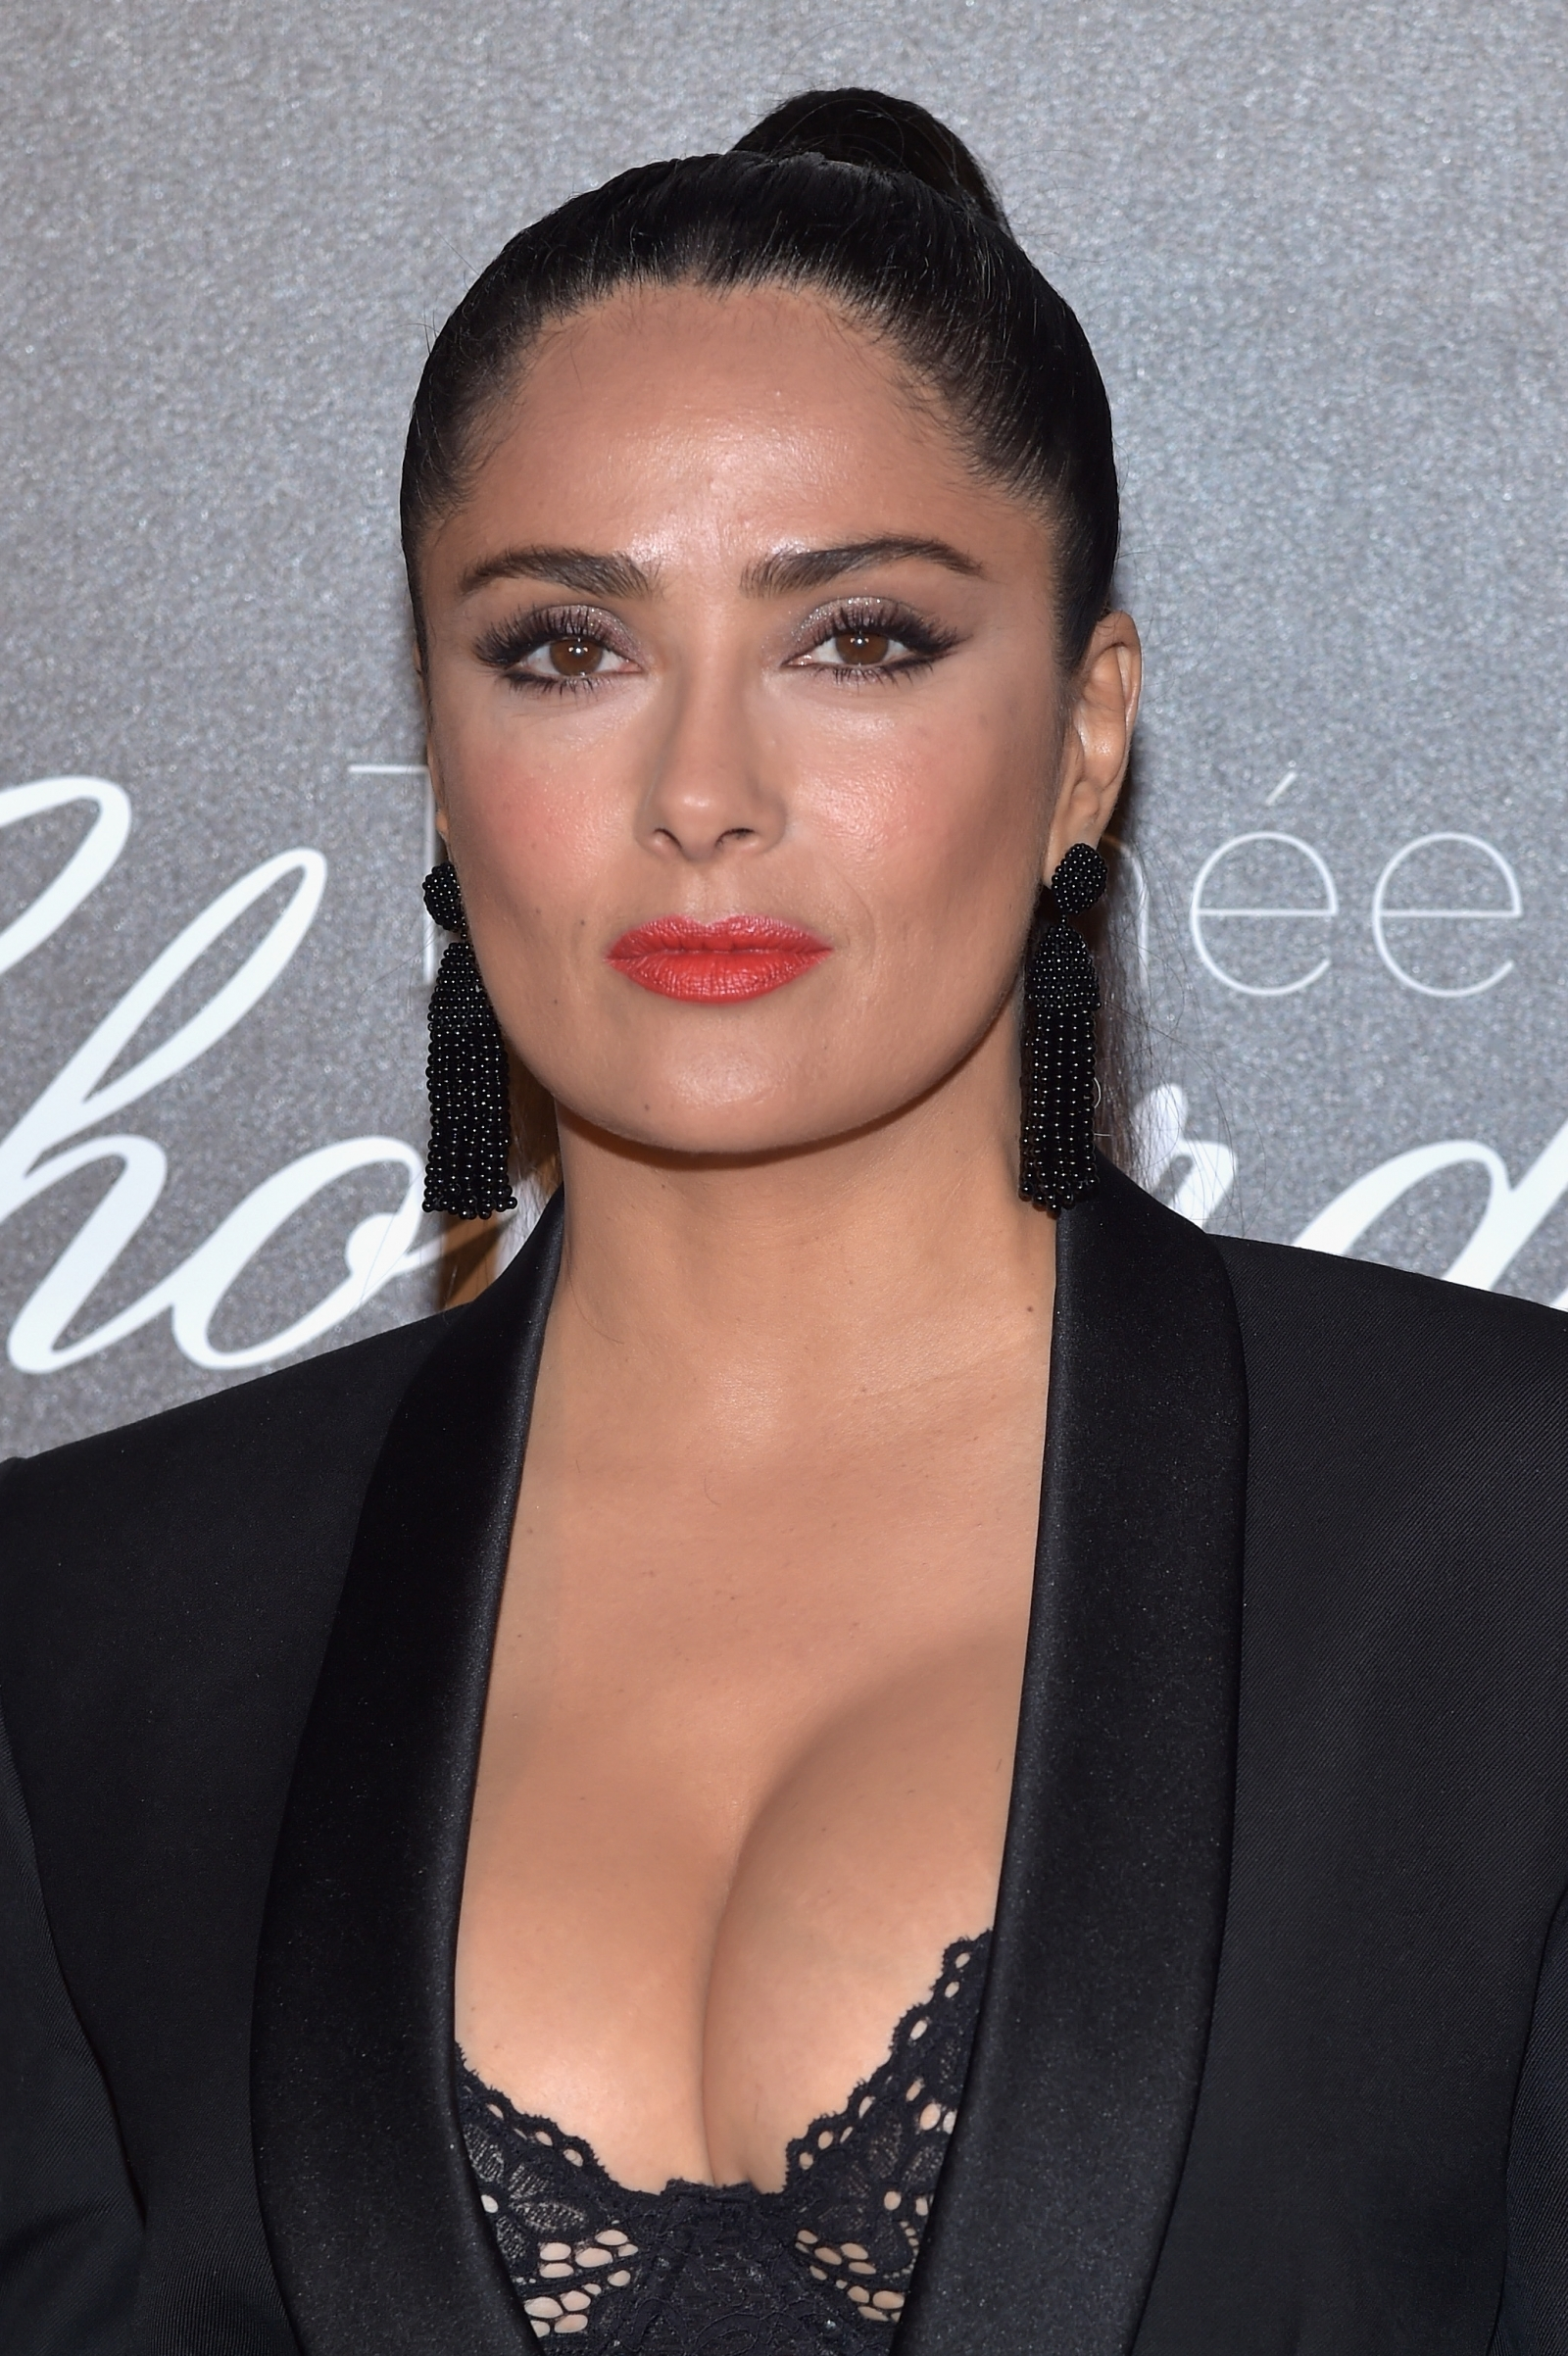 Photos Salma Hayek nudes (16 foto and video), Topless, Fappening, Selfie, braless 2019